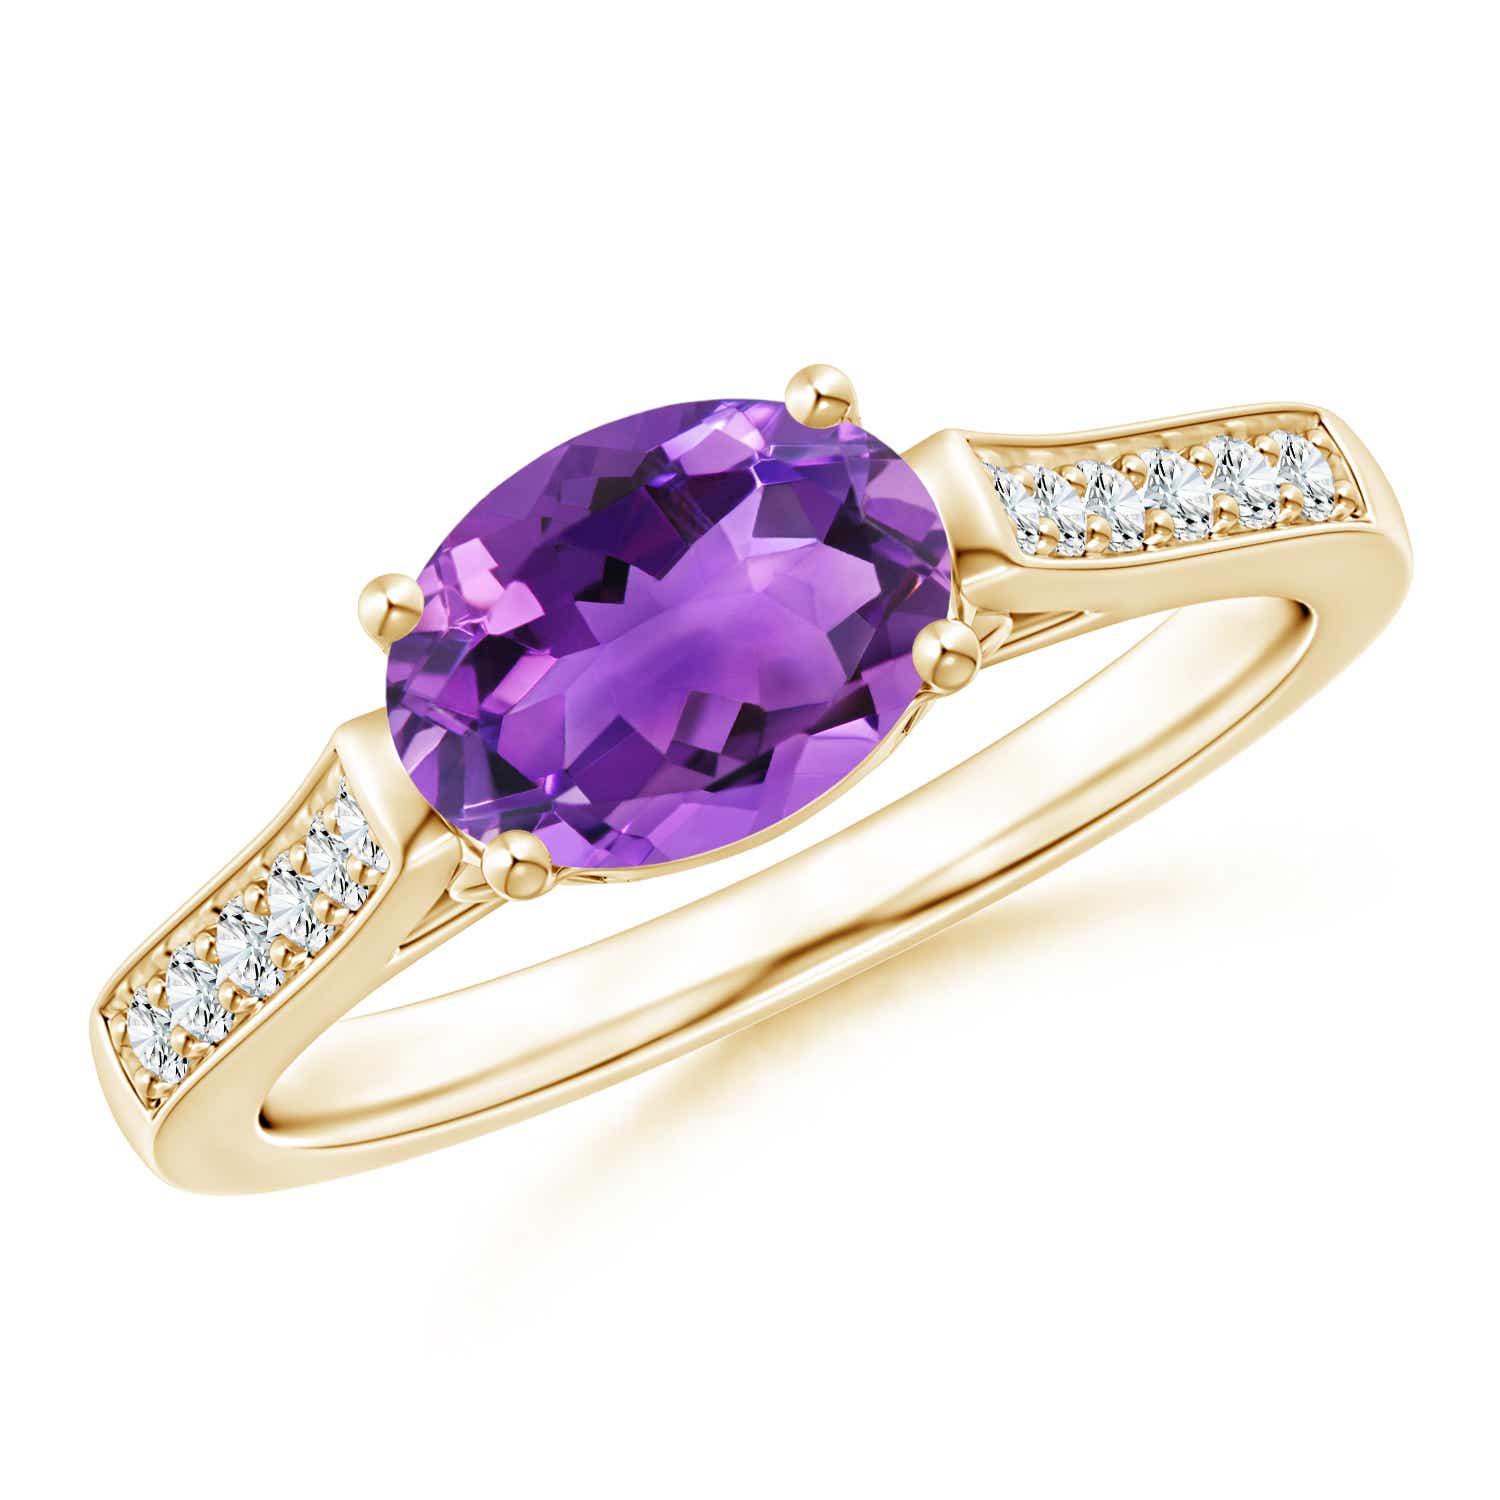 Angara Amethyst and Diamond Engagement Ring in 14k White Gold cBxbfGyfx